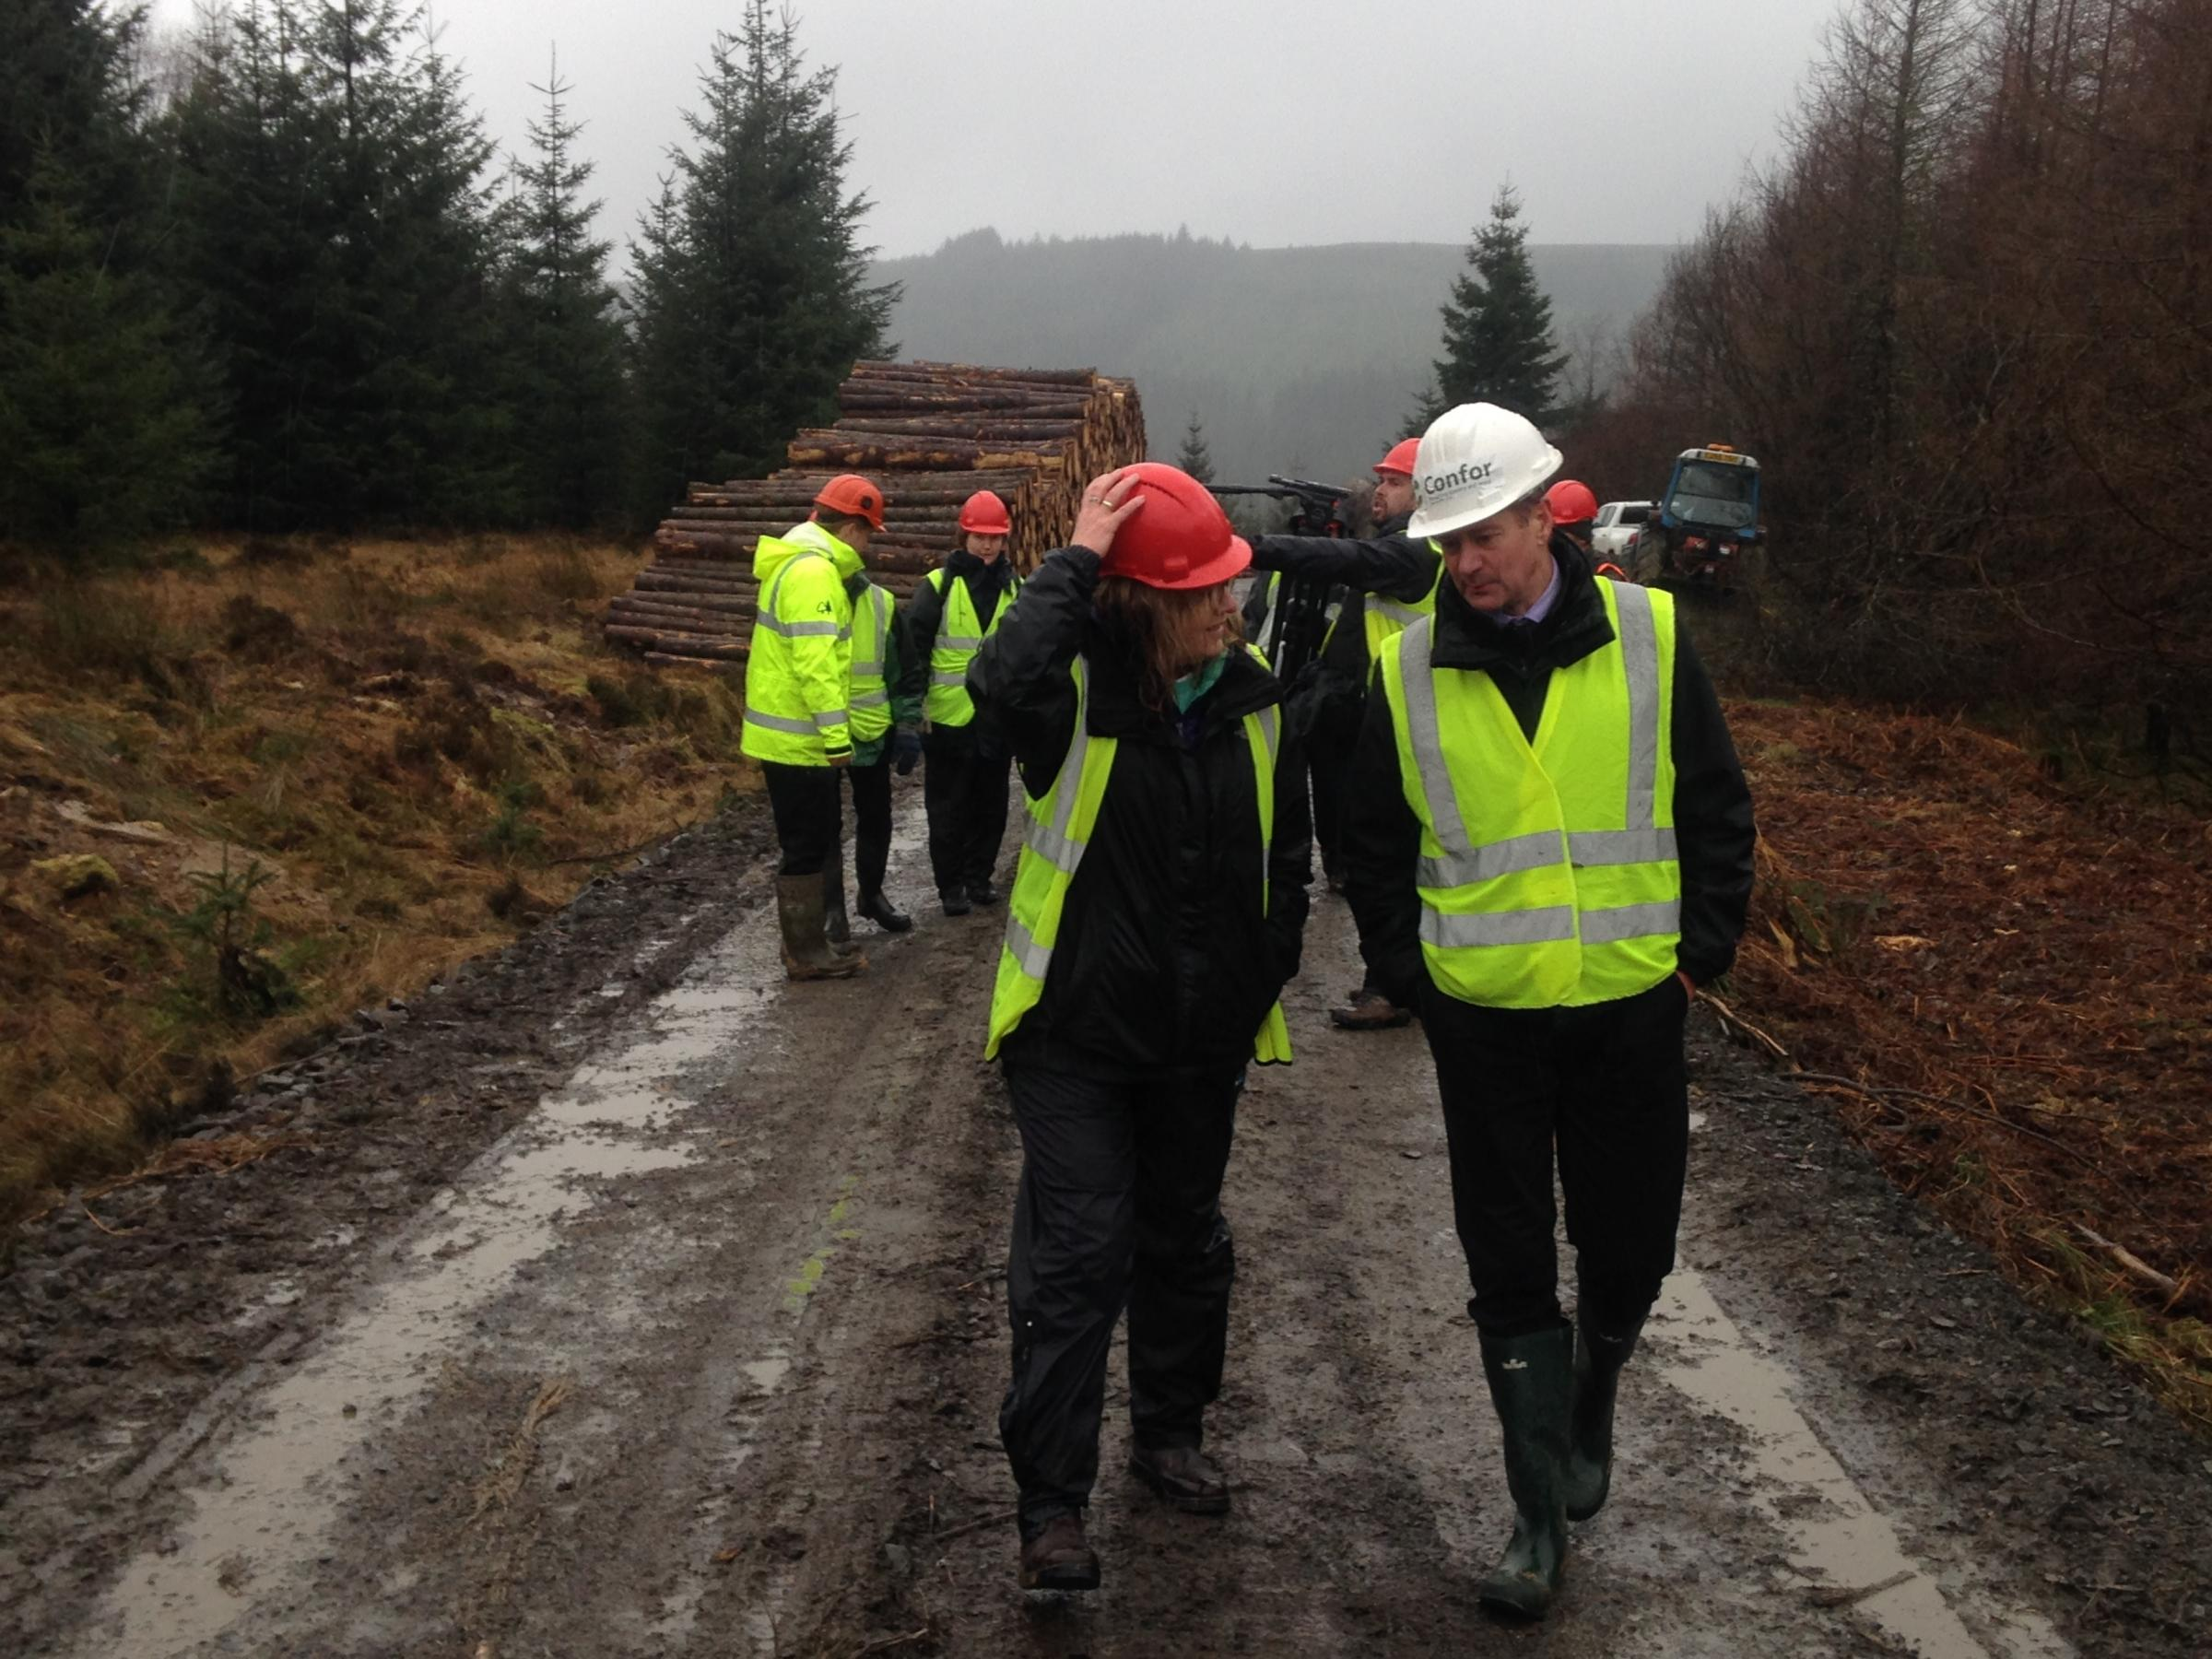 CONFOR CHIEF executive Stuart Goodall being interviewed in Keilder Forest